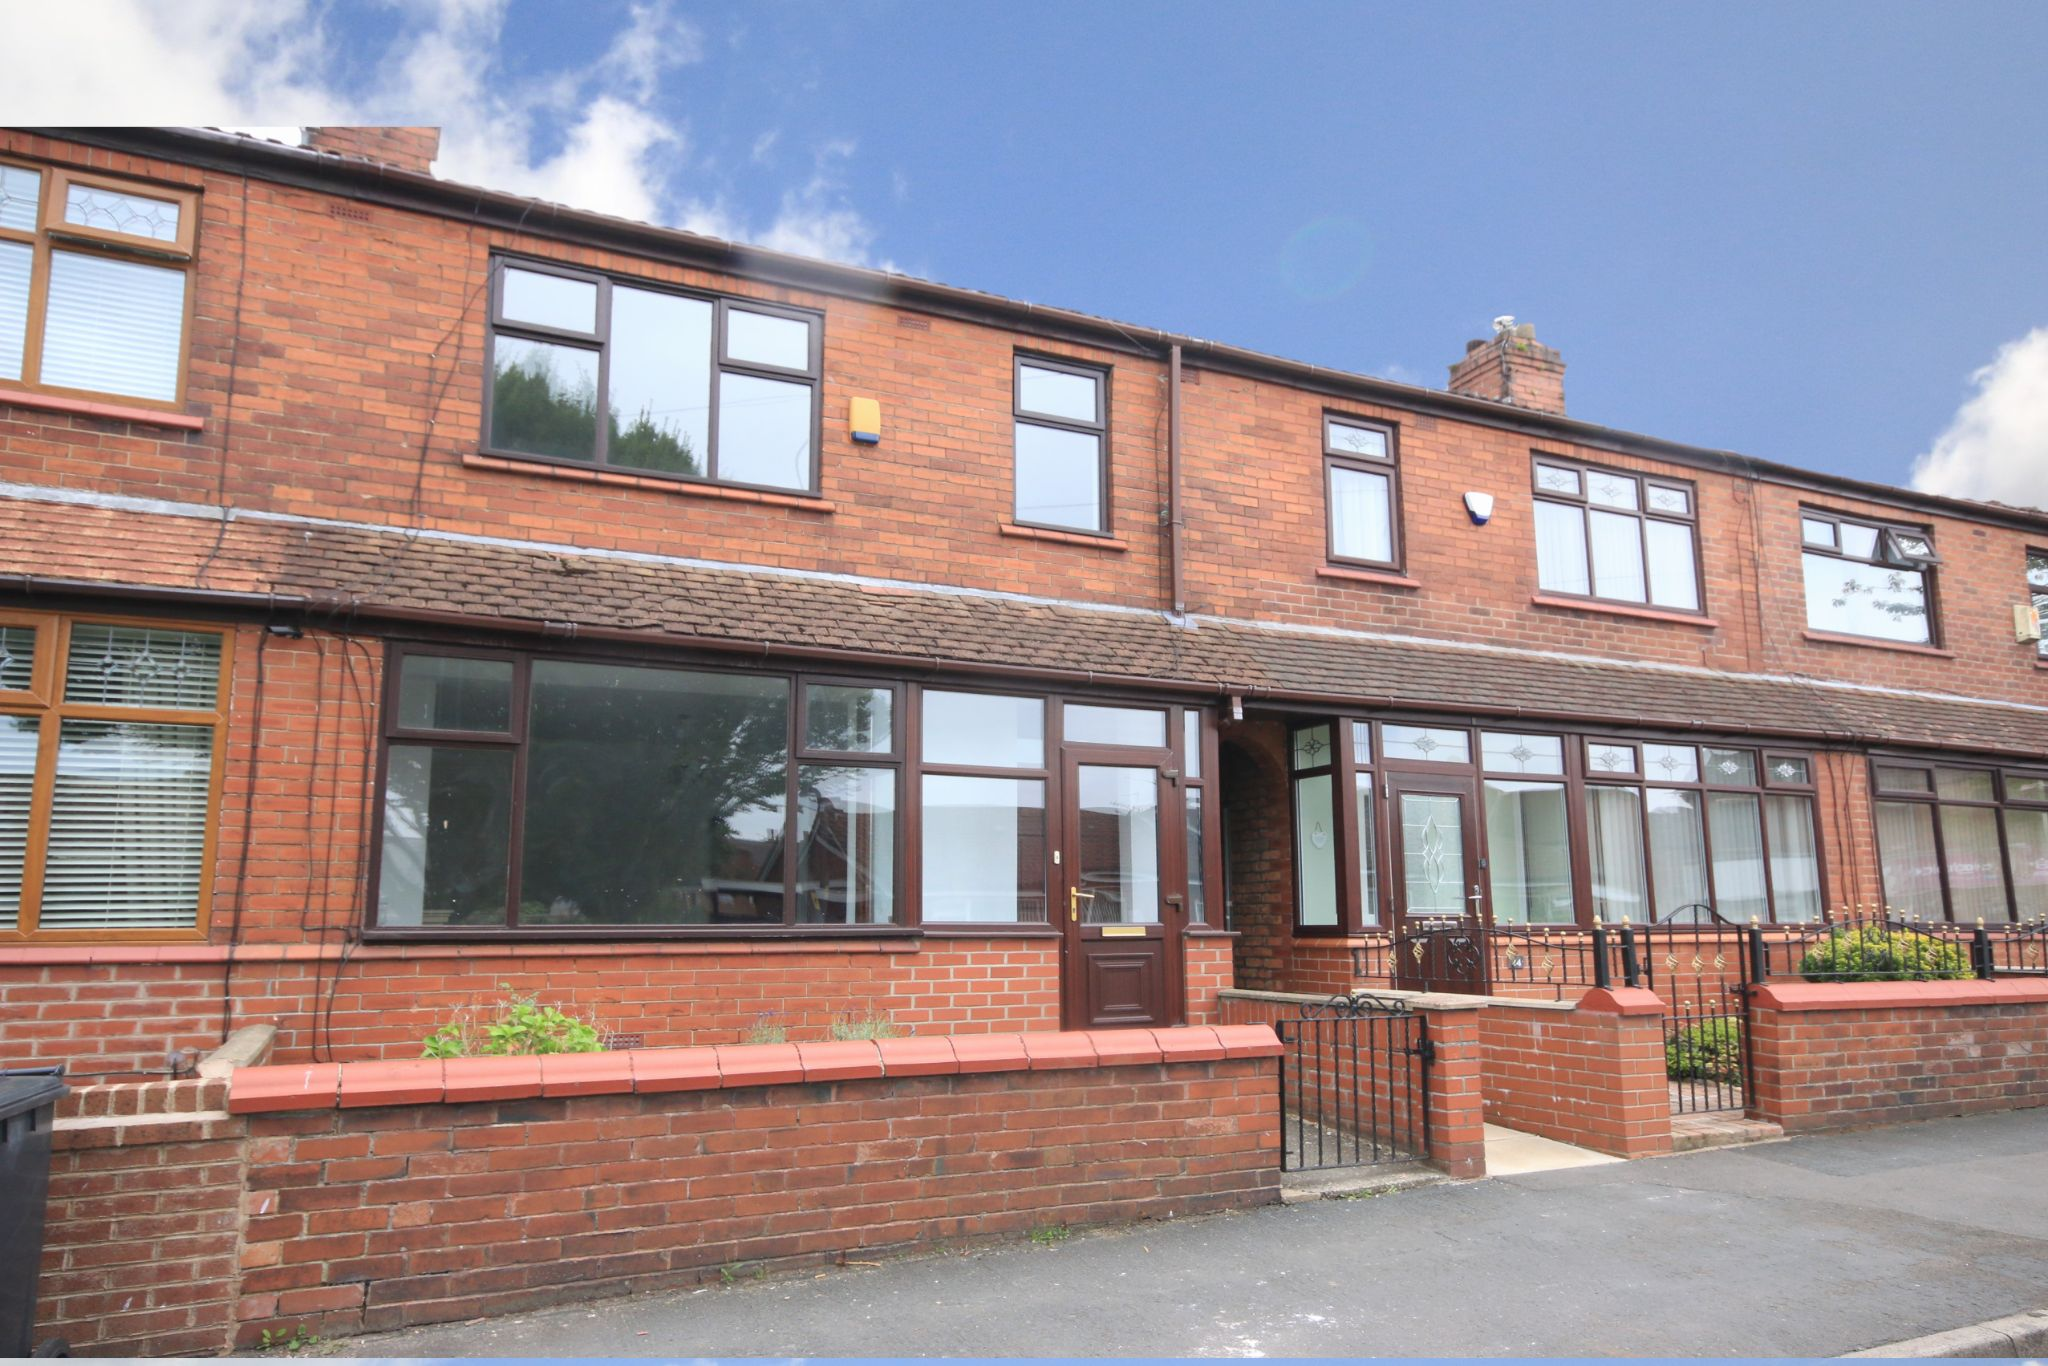 3 bedroom mid terraced house Let in Wigan - Photograph 1.